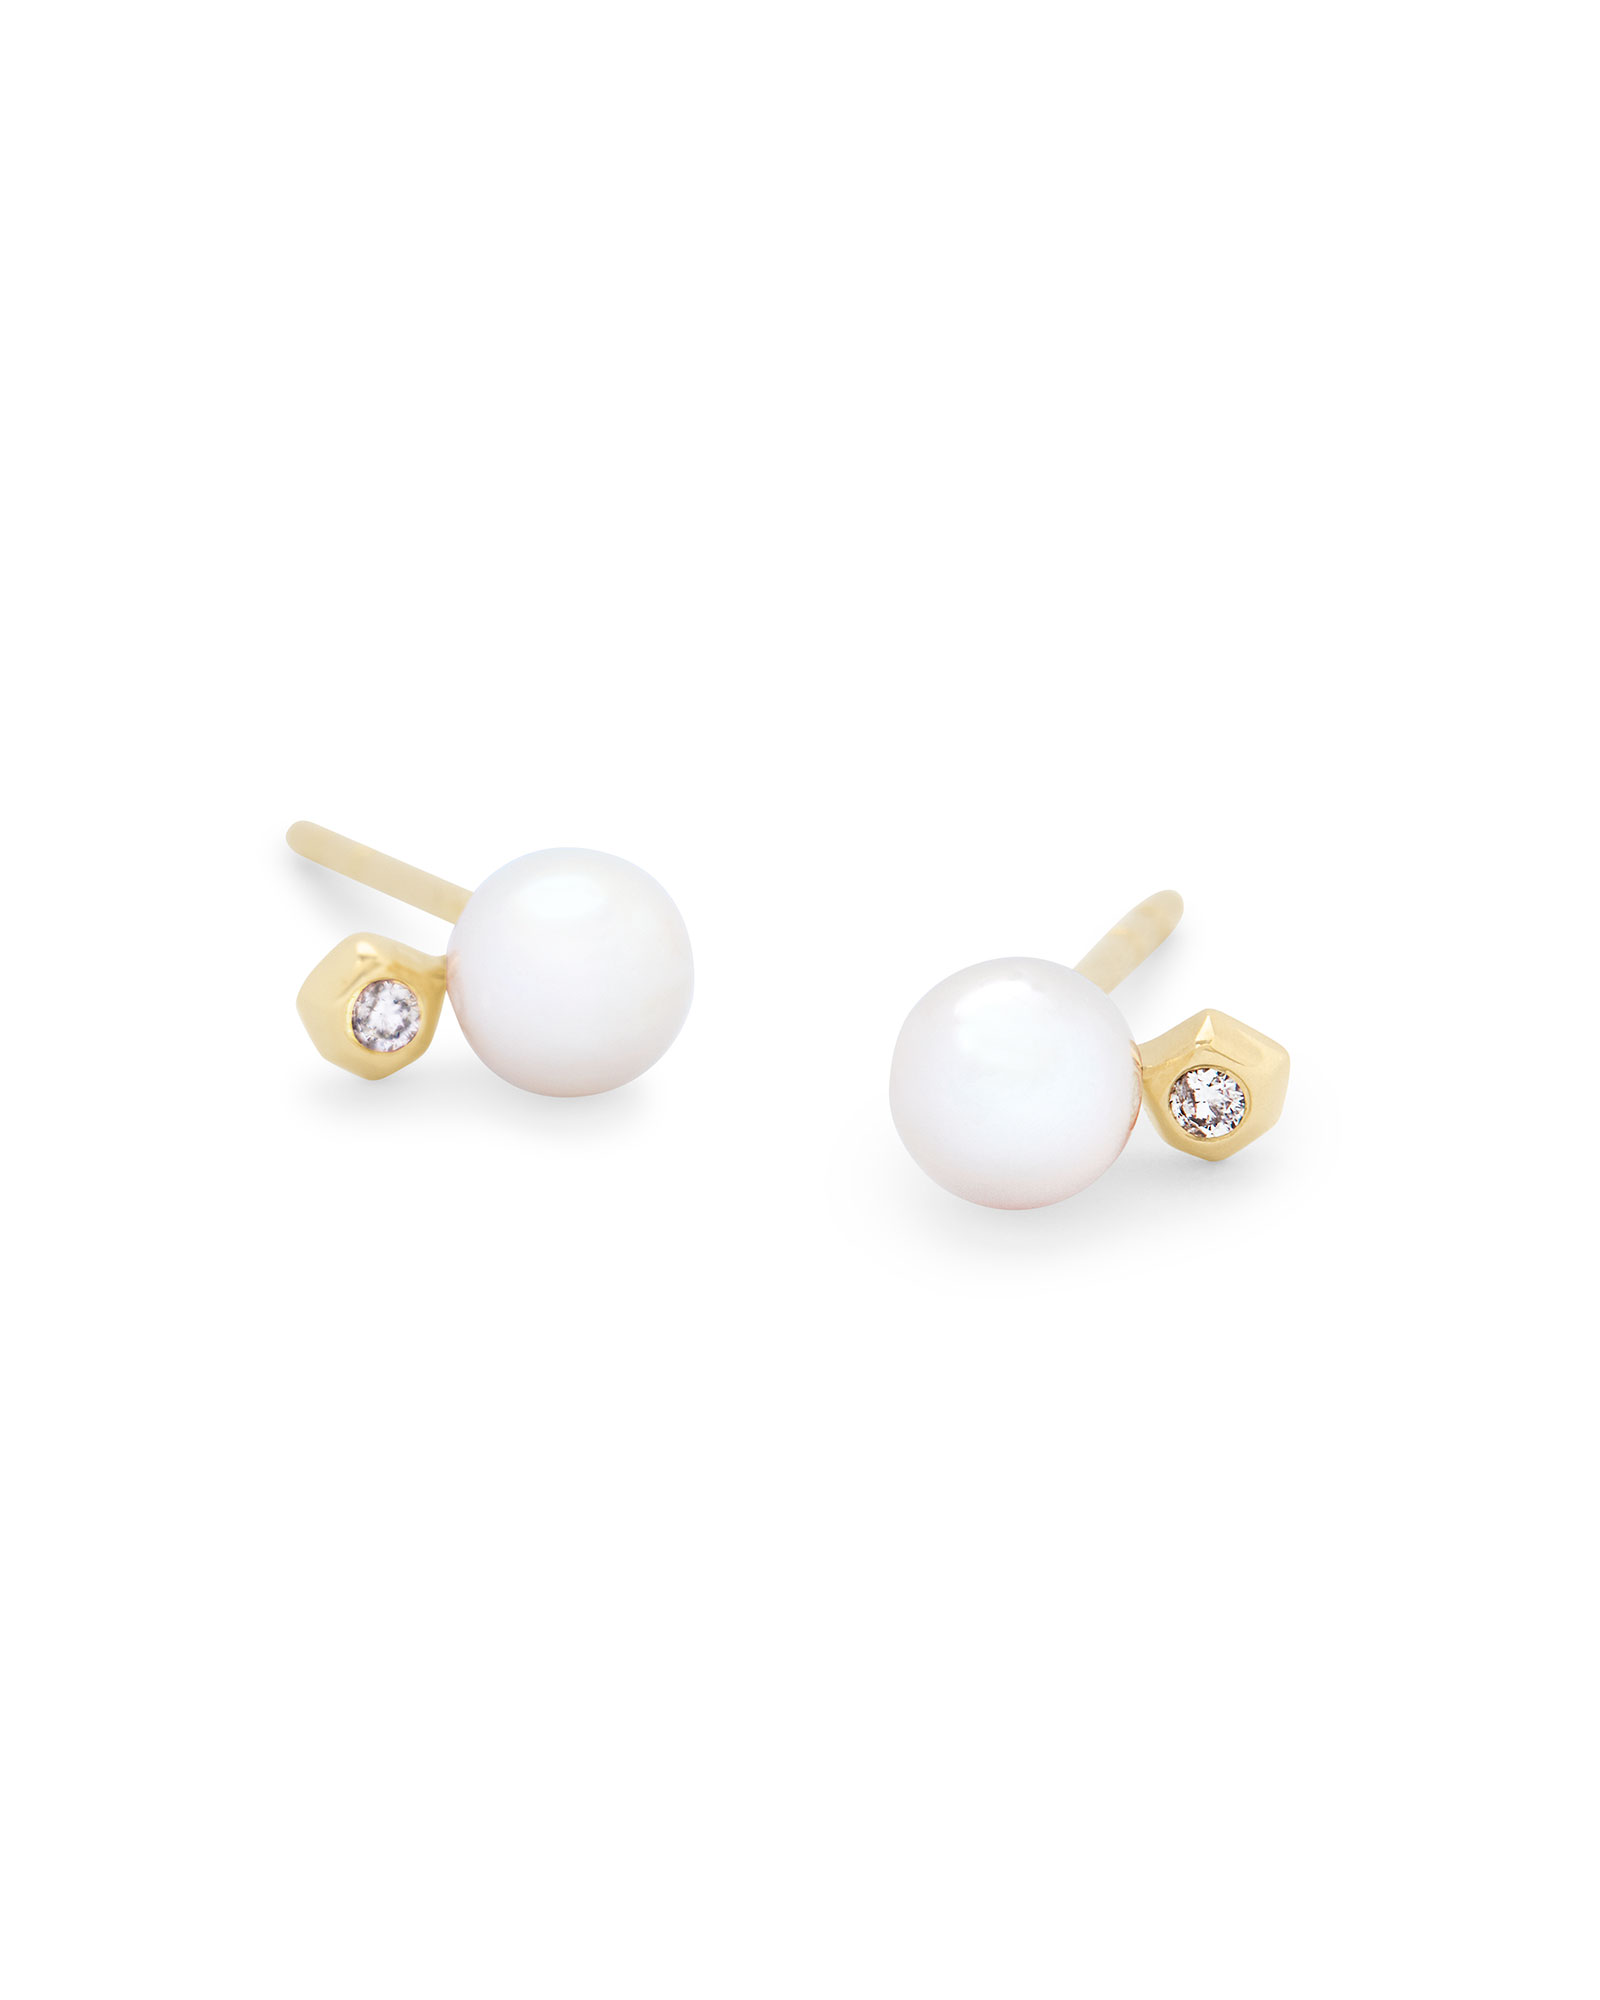 Cathleen 14k Yellow Gold Small Stud Earrings